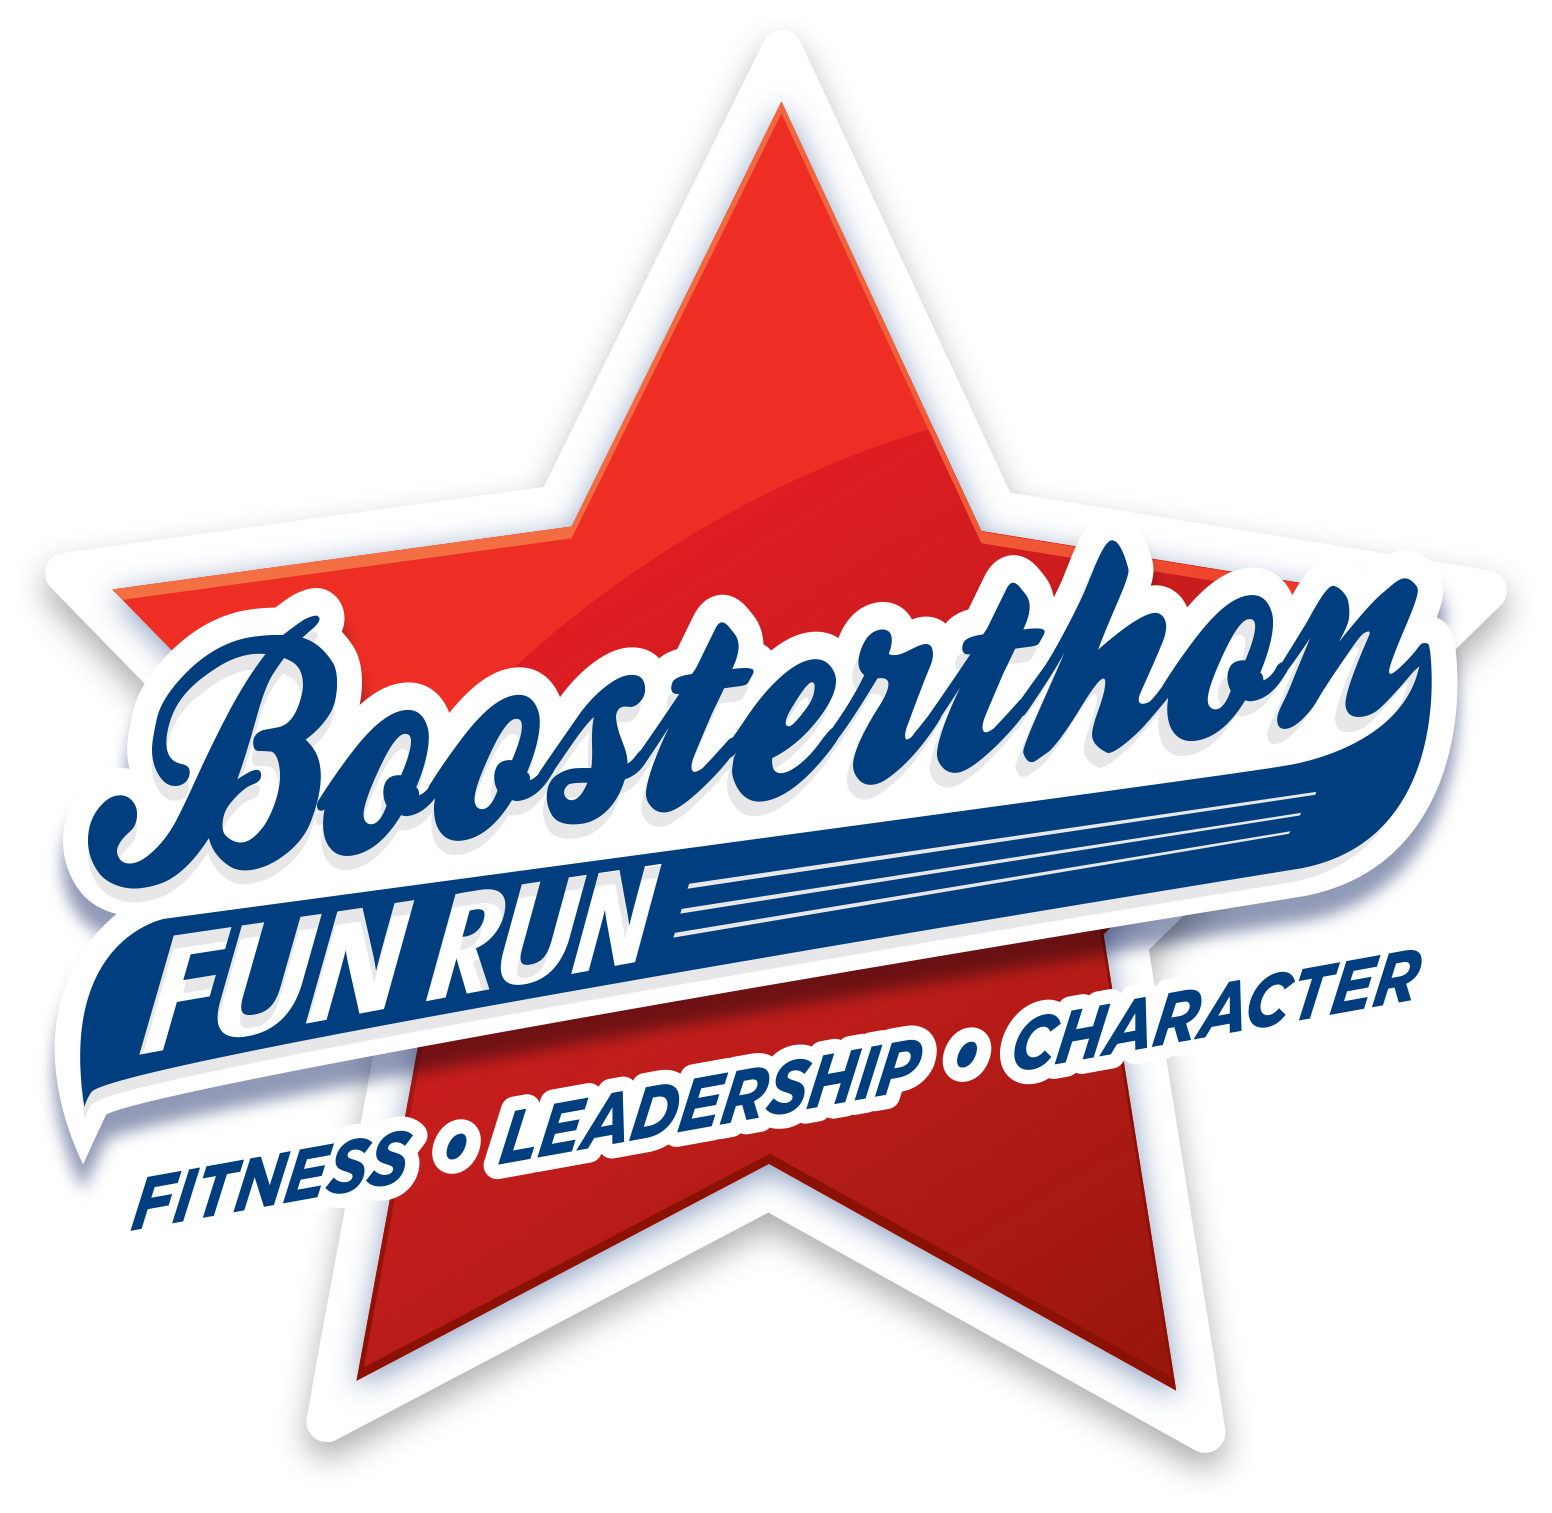 Fun run boosterthon prizes 2018 tax